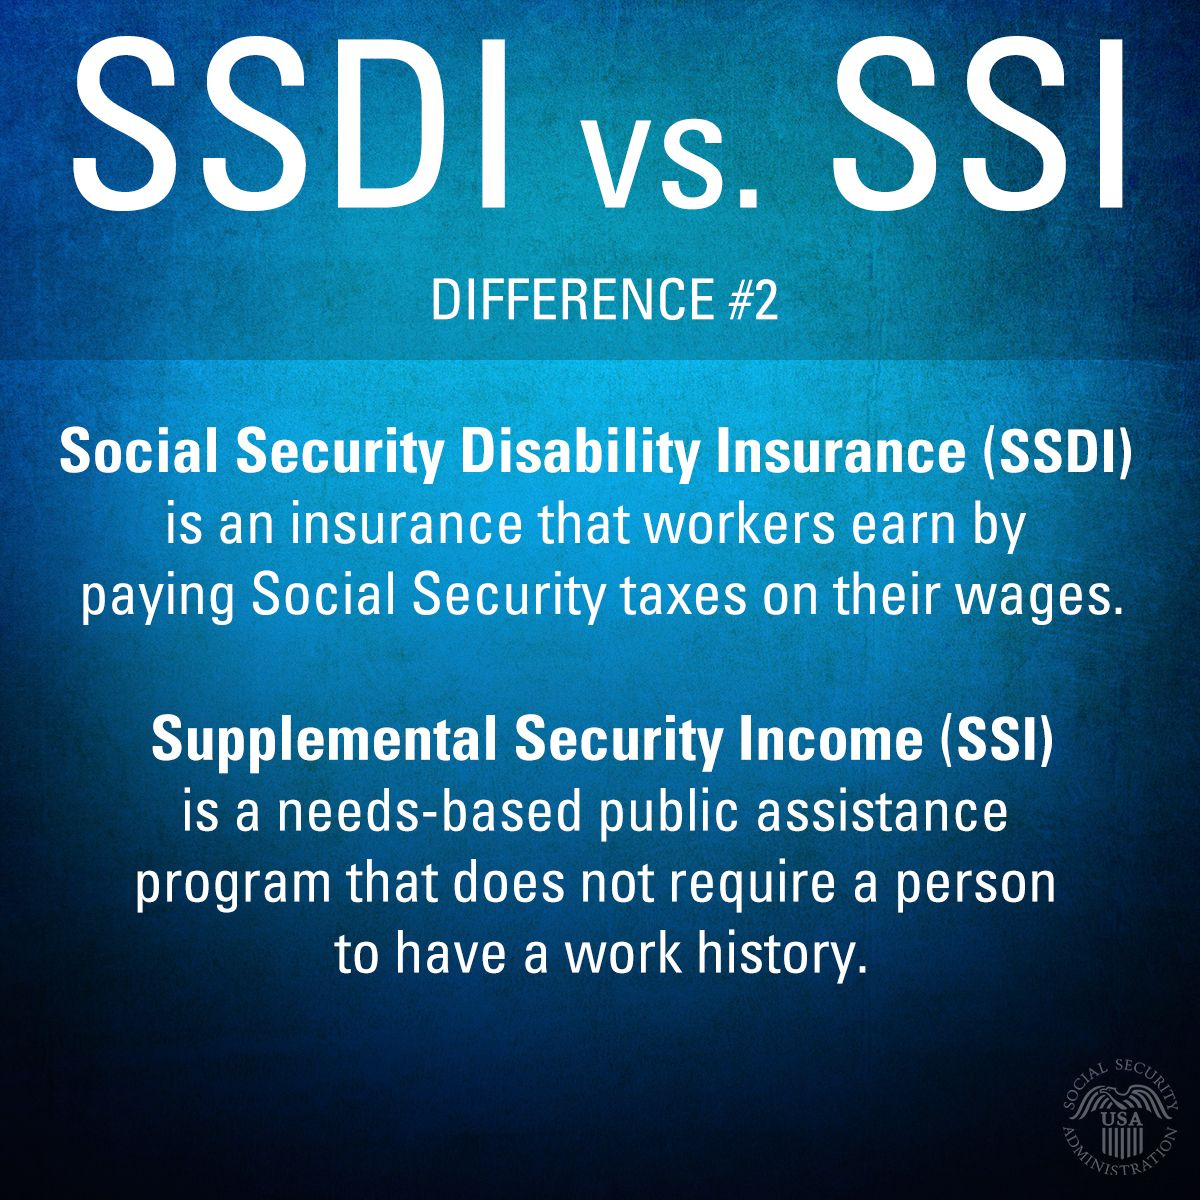 Ssdi Is Earned Paying Socialsecurity Taxes Ssi Is A Needsbased Publica Social Security Disability Health Insurance Benefits Supplemental Security Income